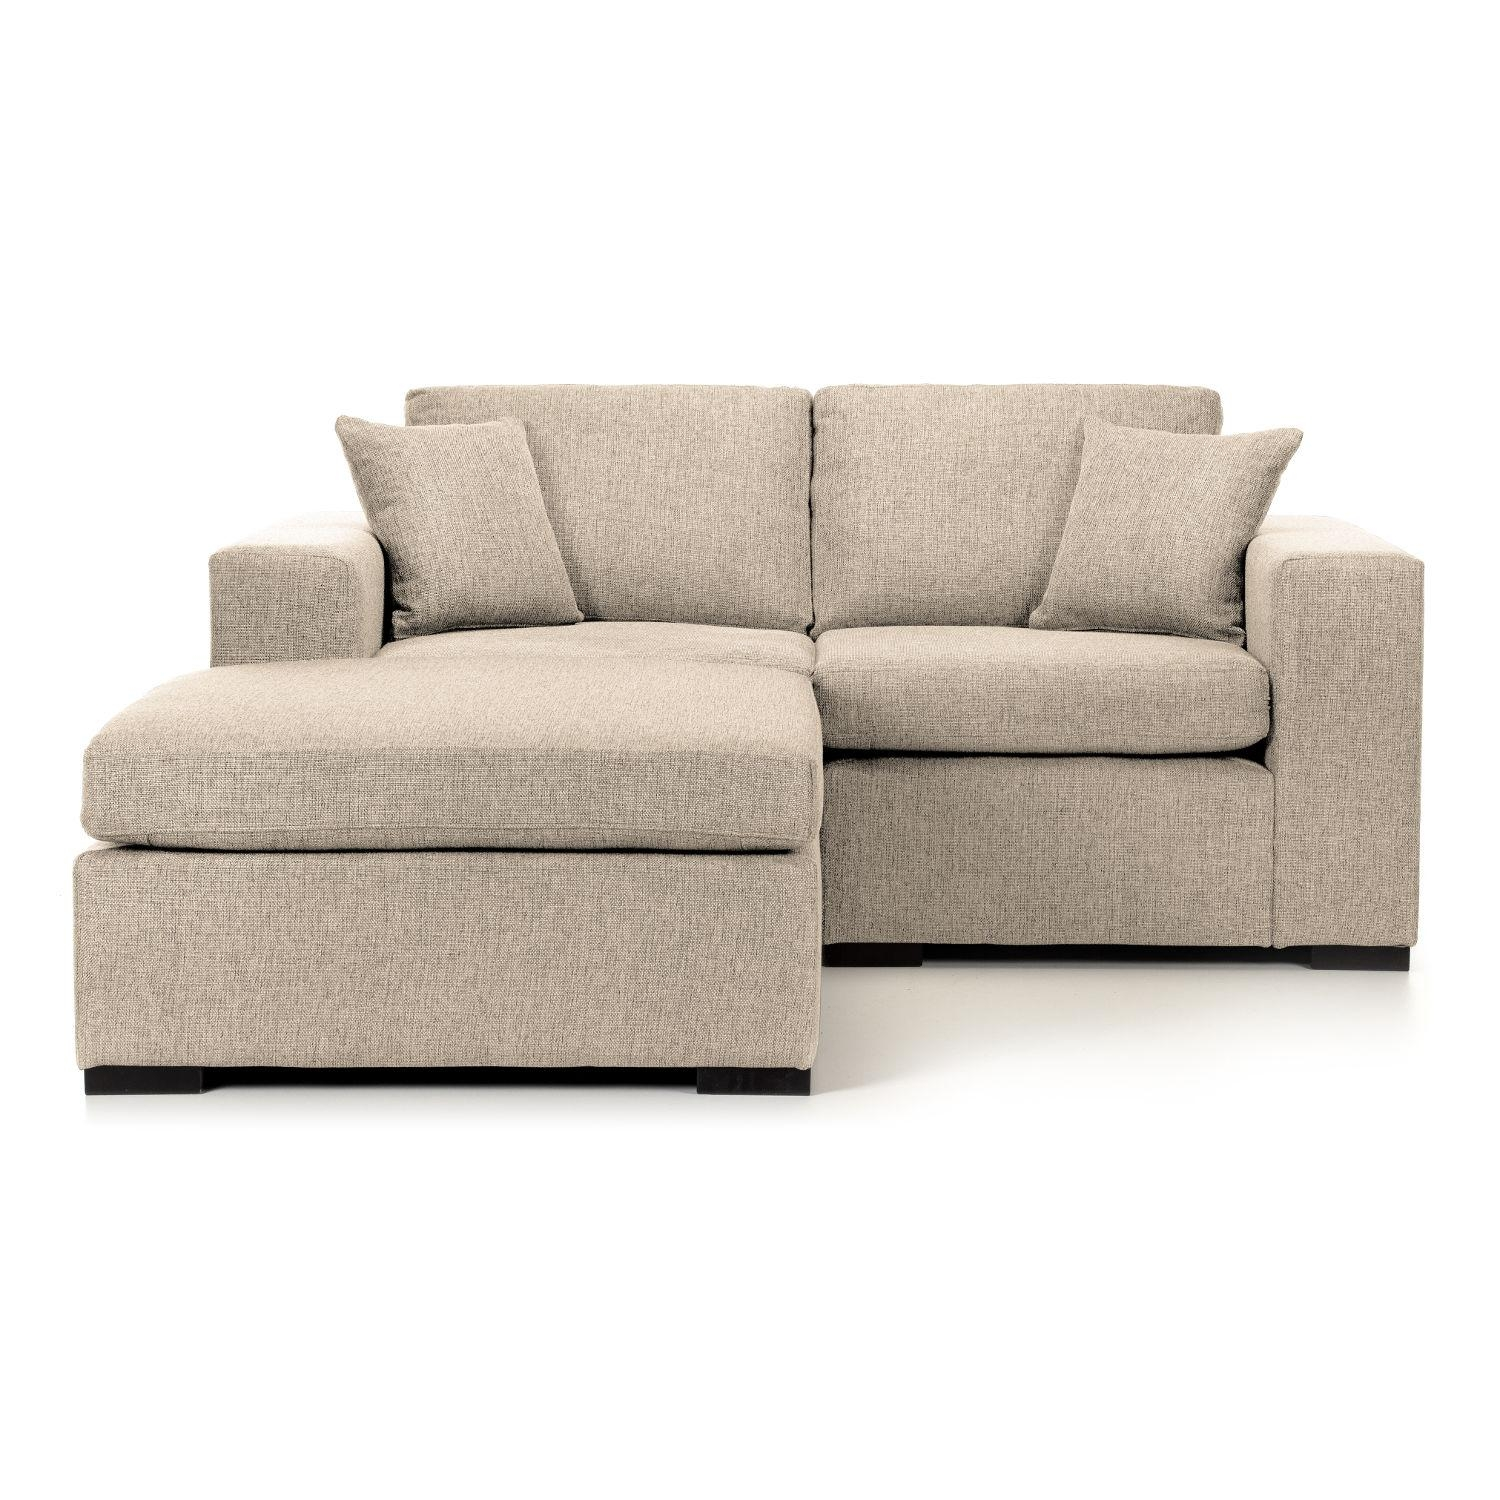 Small Corner Sofa With Chaise | Tehranmix Decoration In Modular Corner Sofas (View 11 of 20)